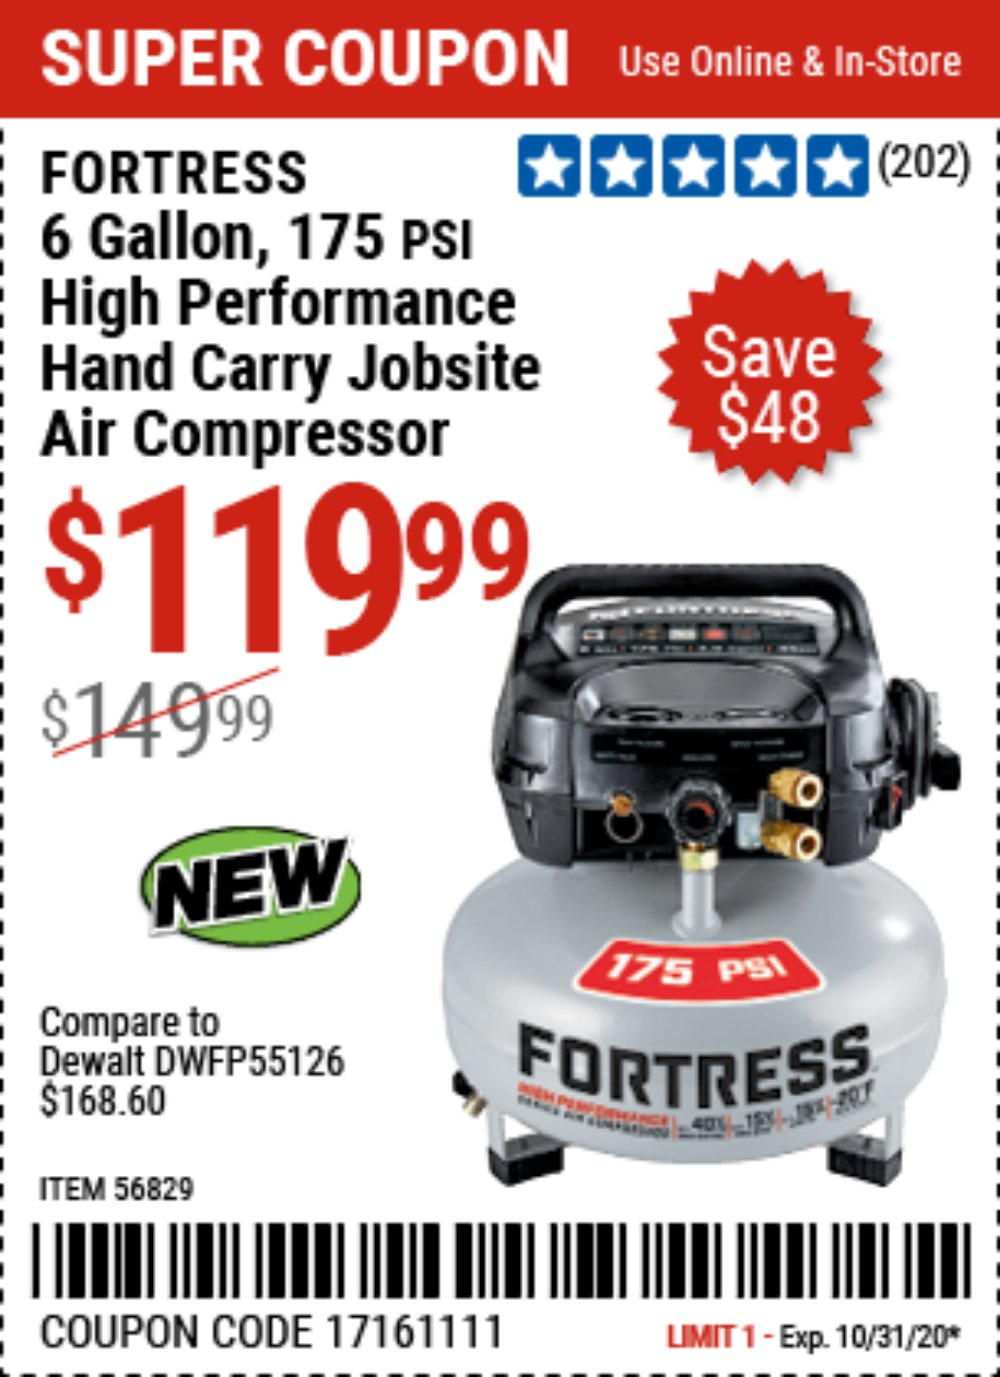 Harbor Freight Coupon, HF Coupons - FORTRESS 6 Gallon 175 PSI High Performance Hand Carry Jobsite Air Compressor for $119.99